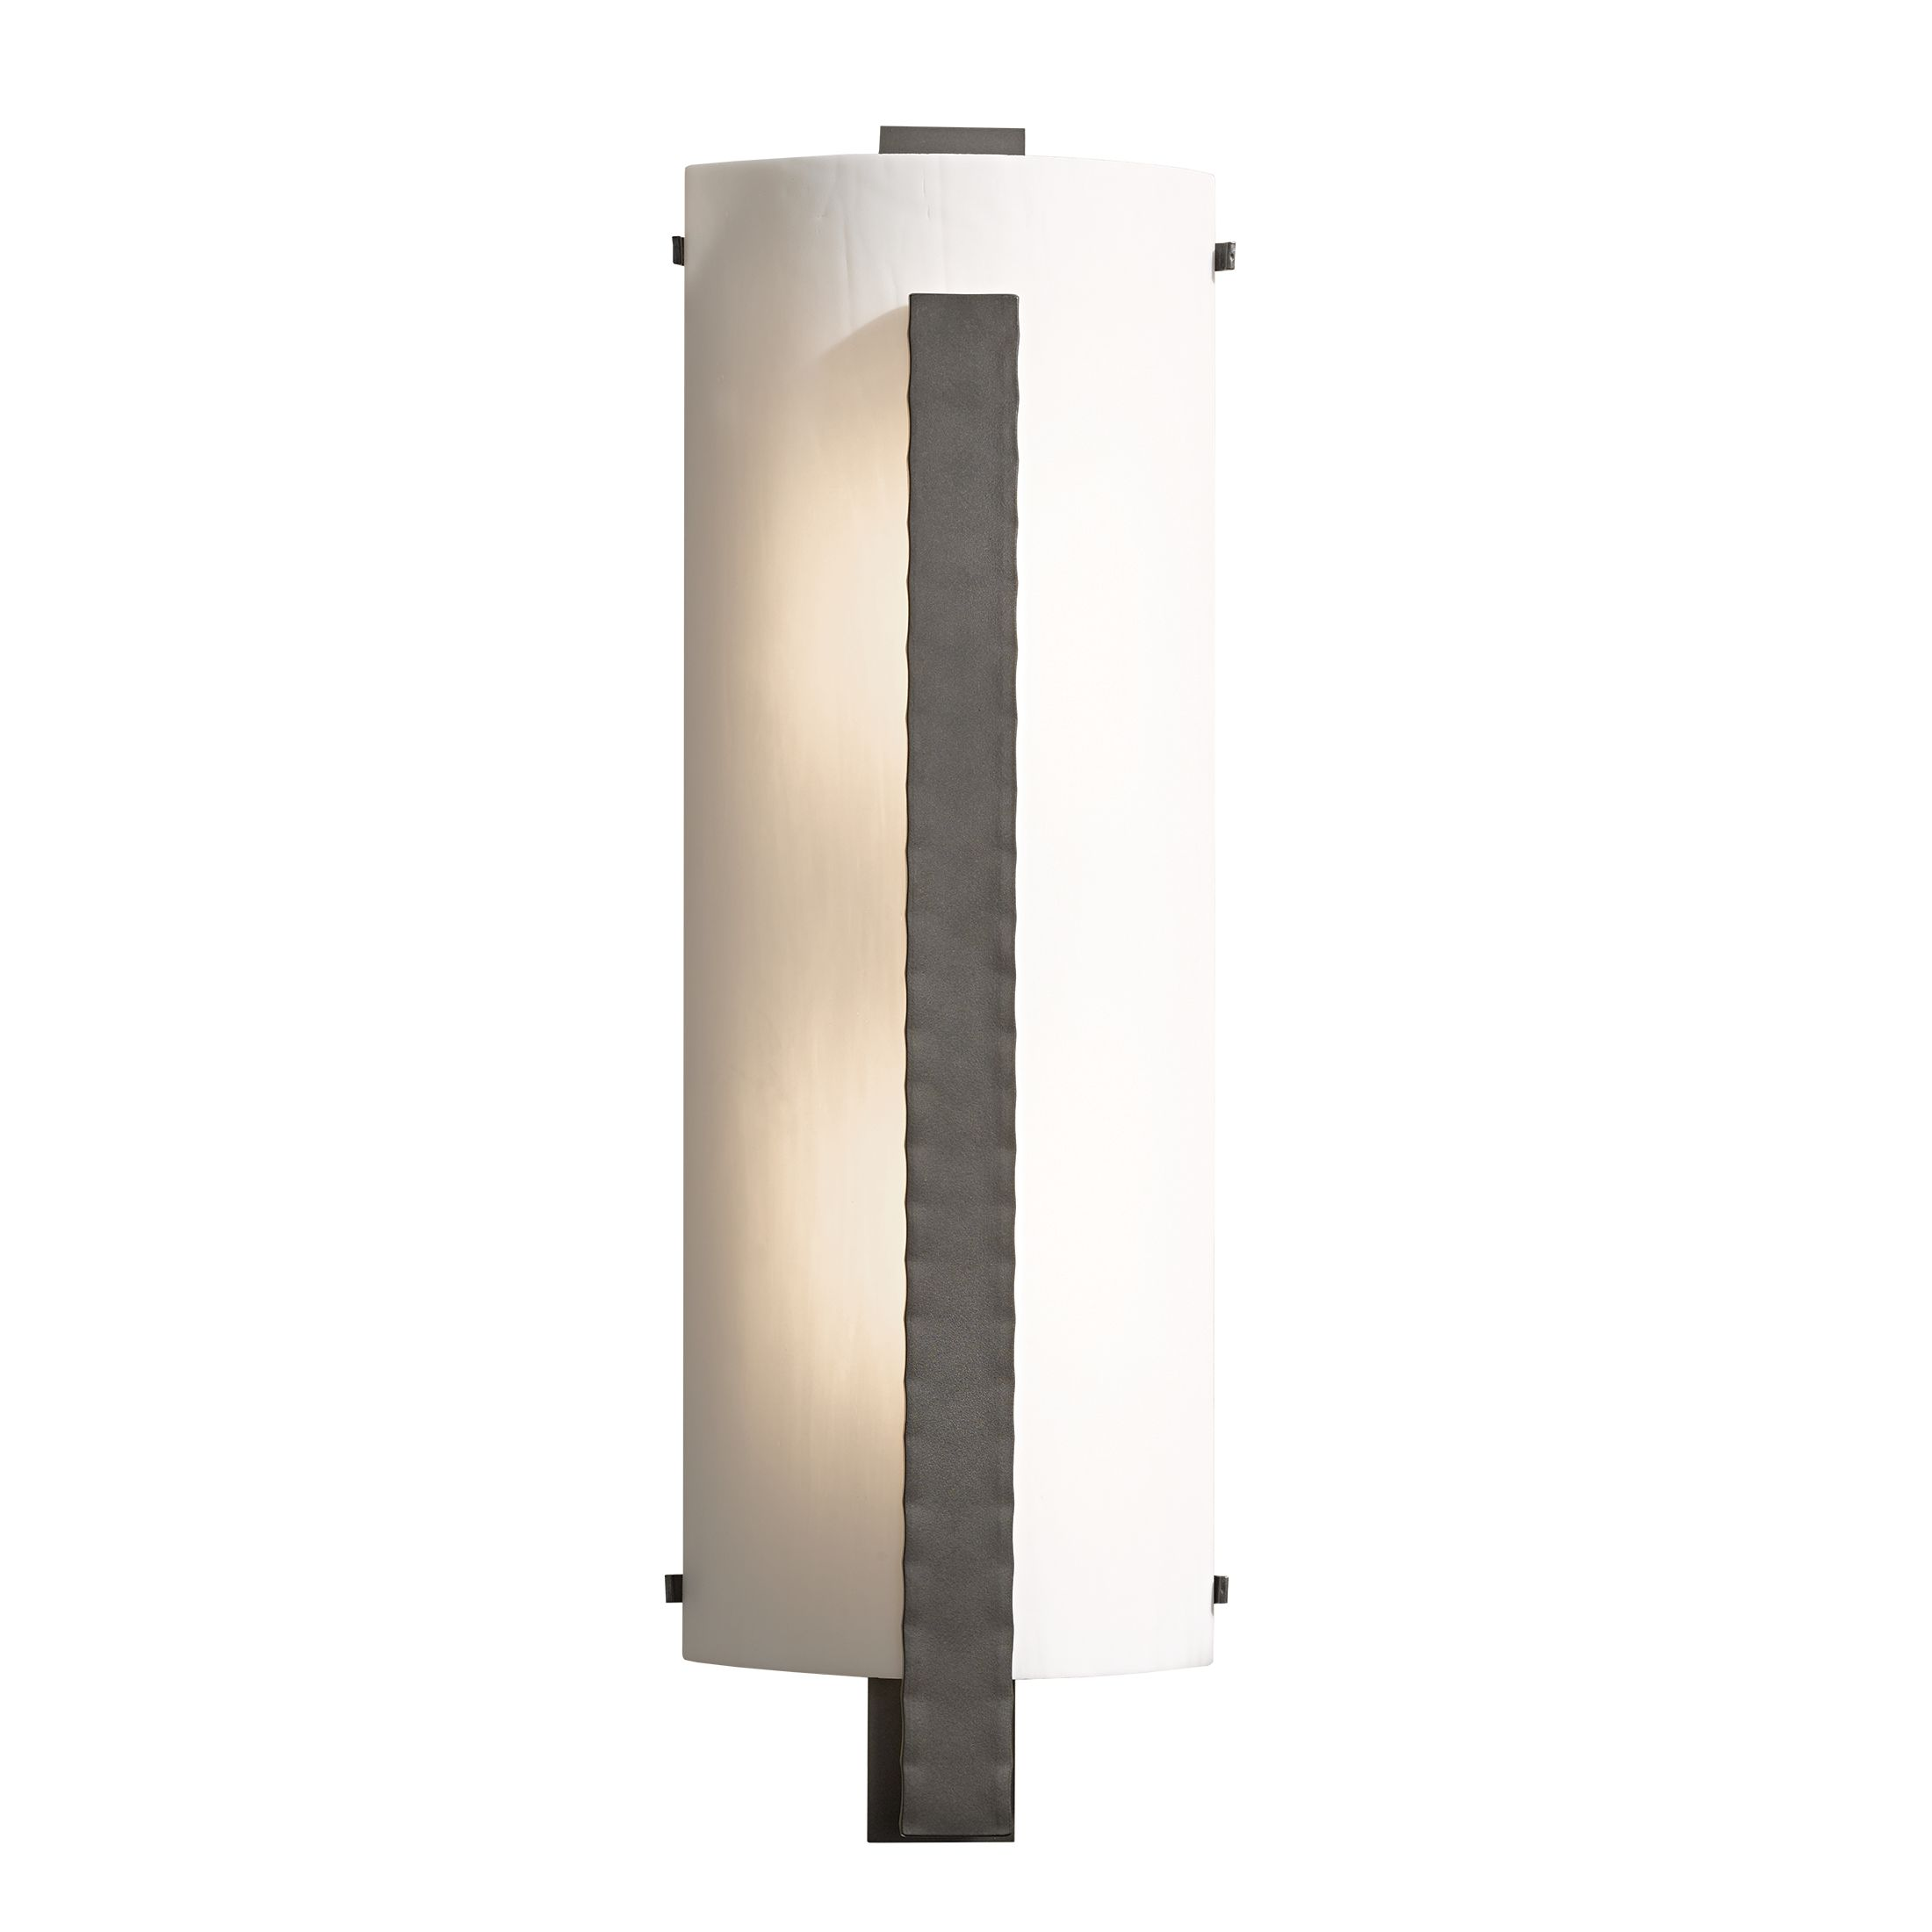 Thumbnail for Forged Vertical Bar Large Sconce